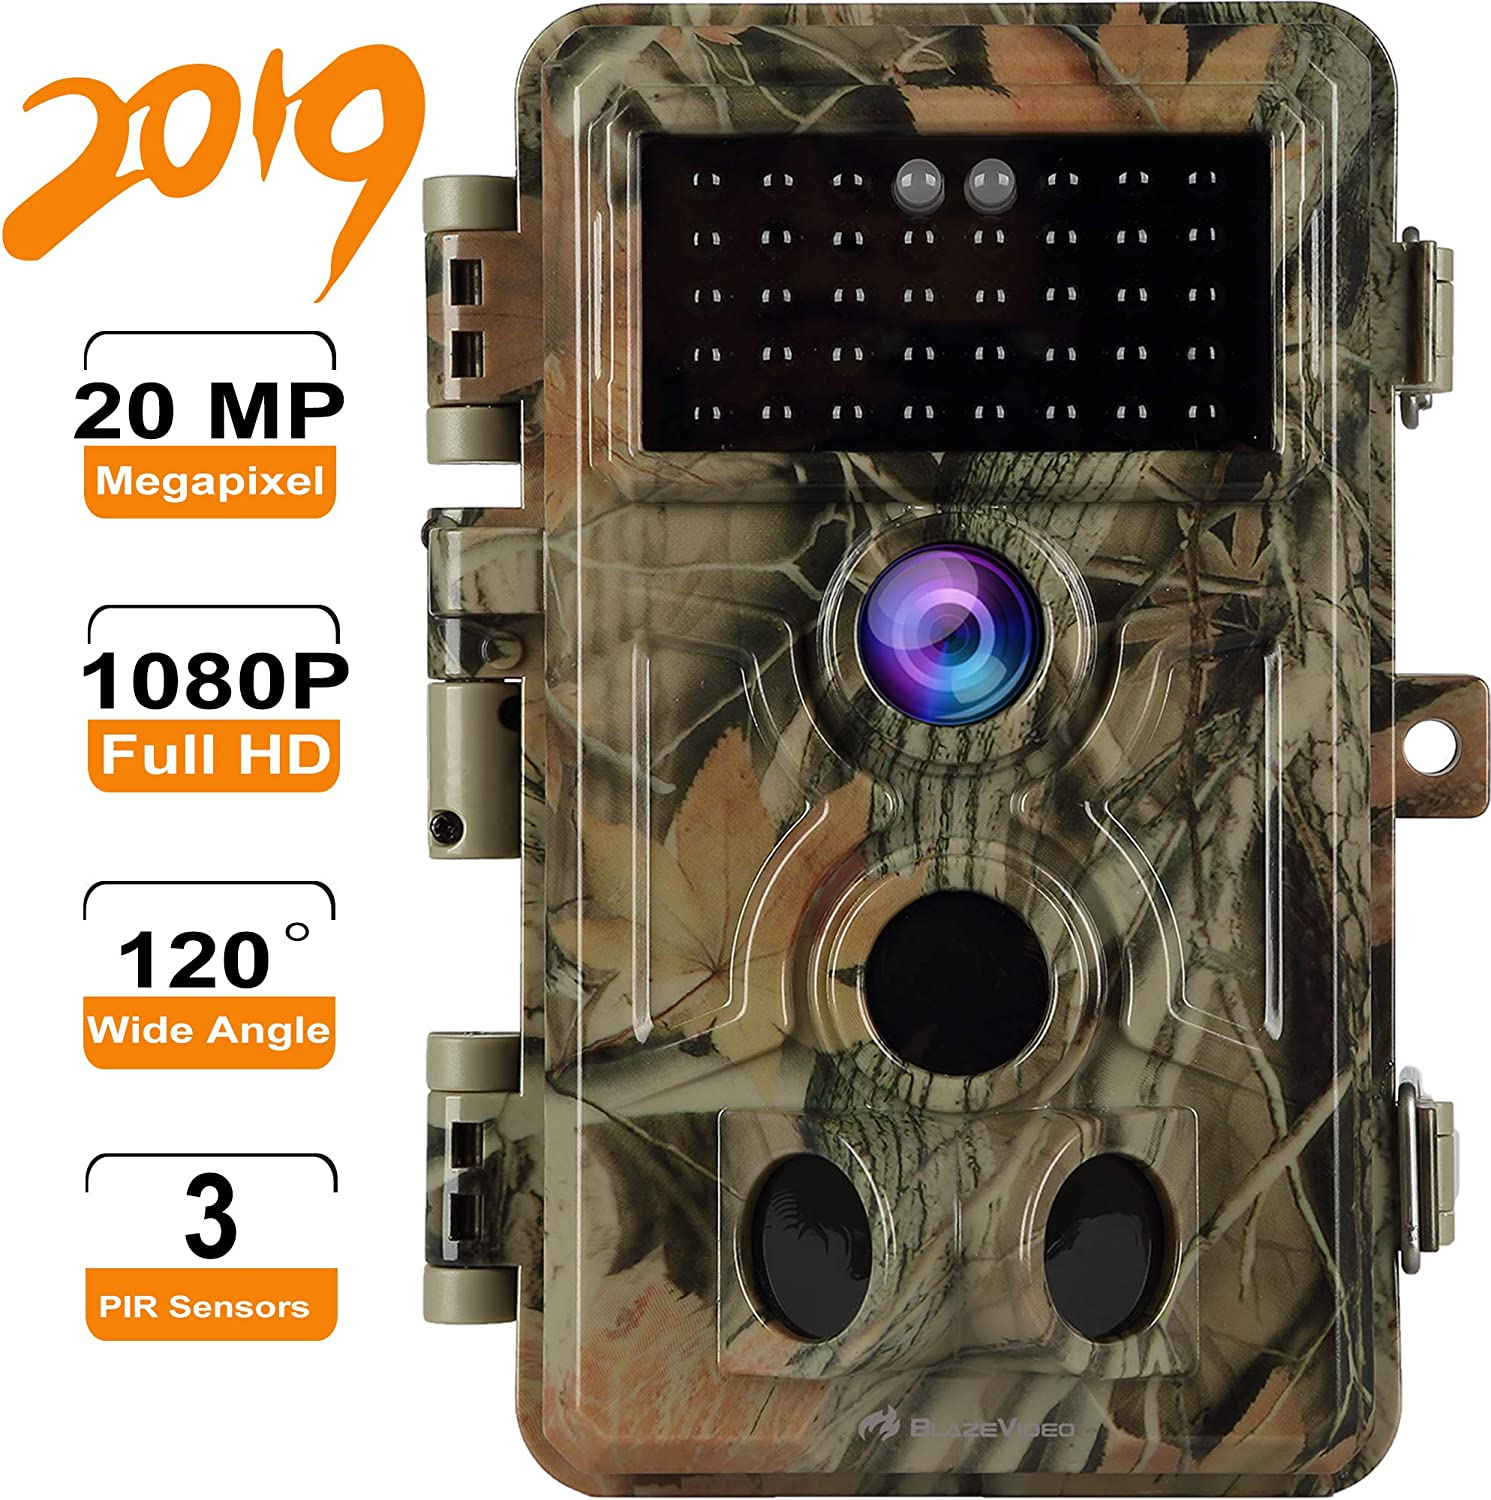 Game Trail Camera HD 20MP Picture 1920x1080P Audio Video No Glow with Night Vision, Deer Hunting Camera 120 3-PIR Motion Activated 0.2S Trigger Speed, IP66 Waterproof, Photo Video Model